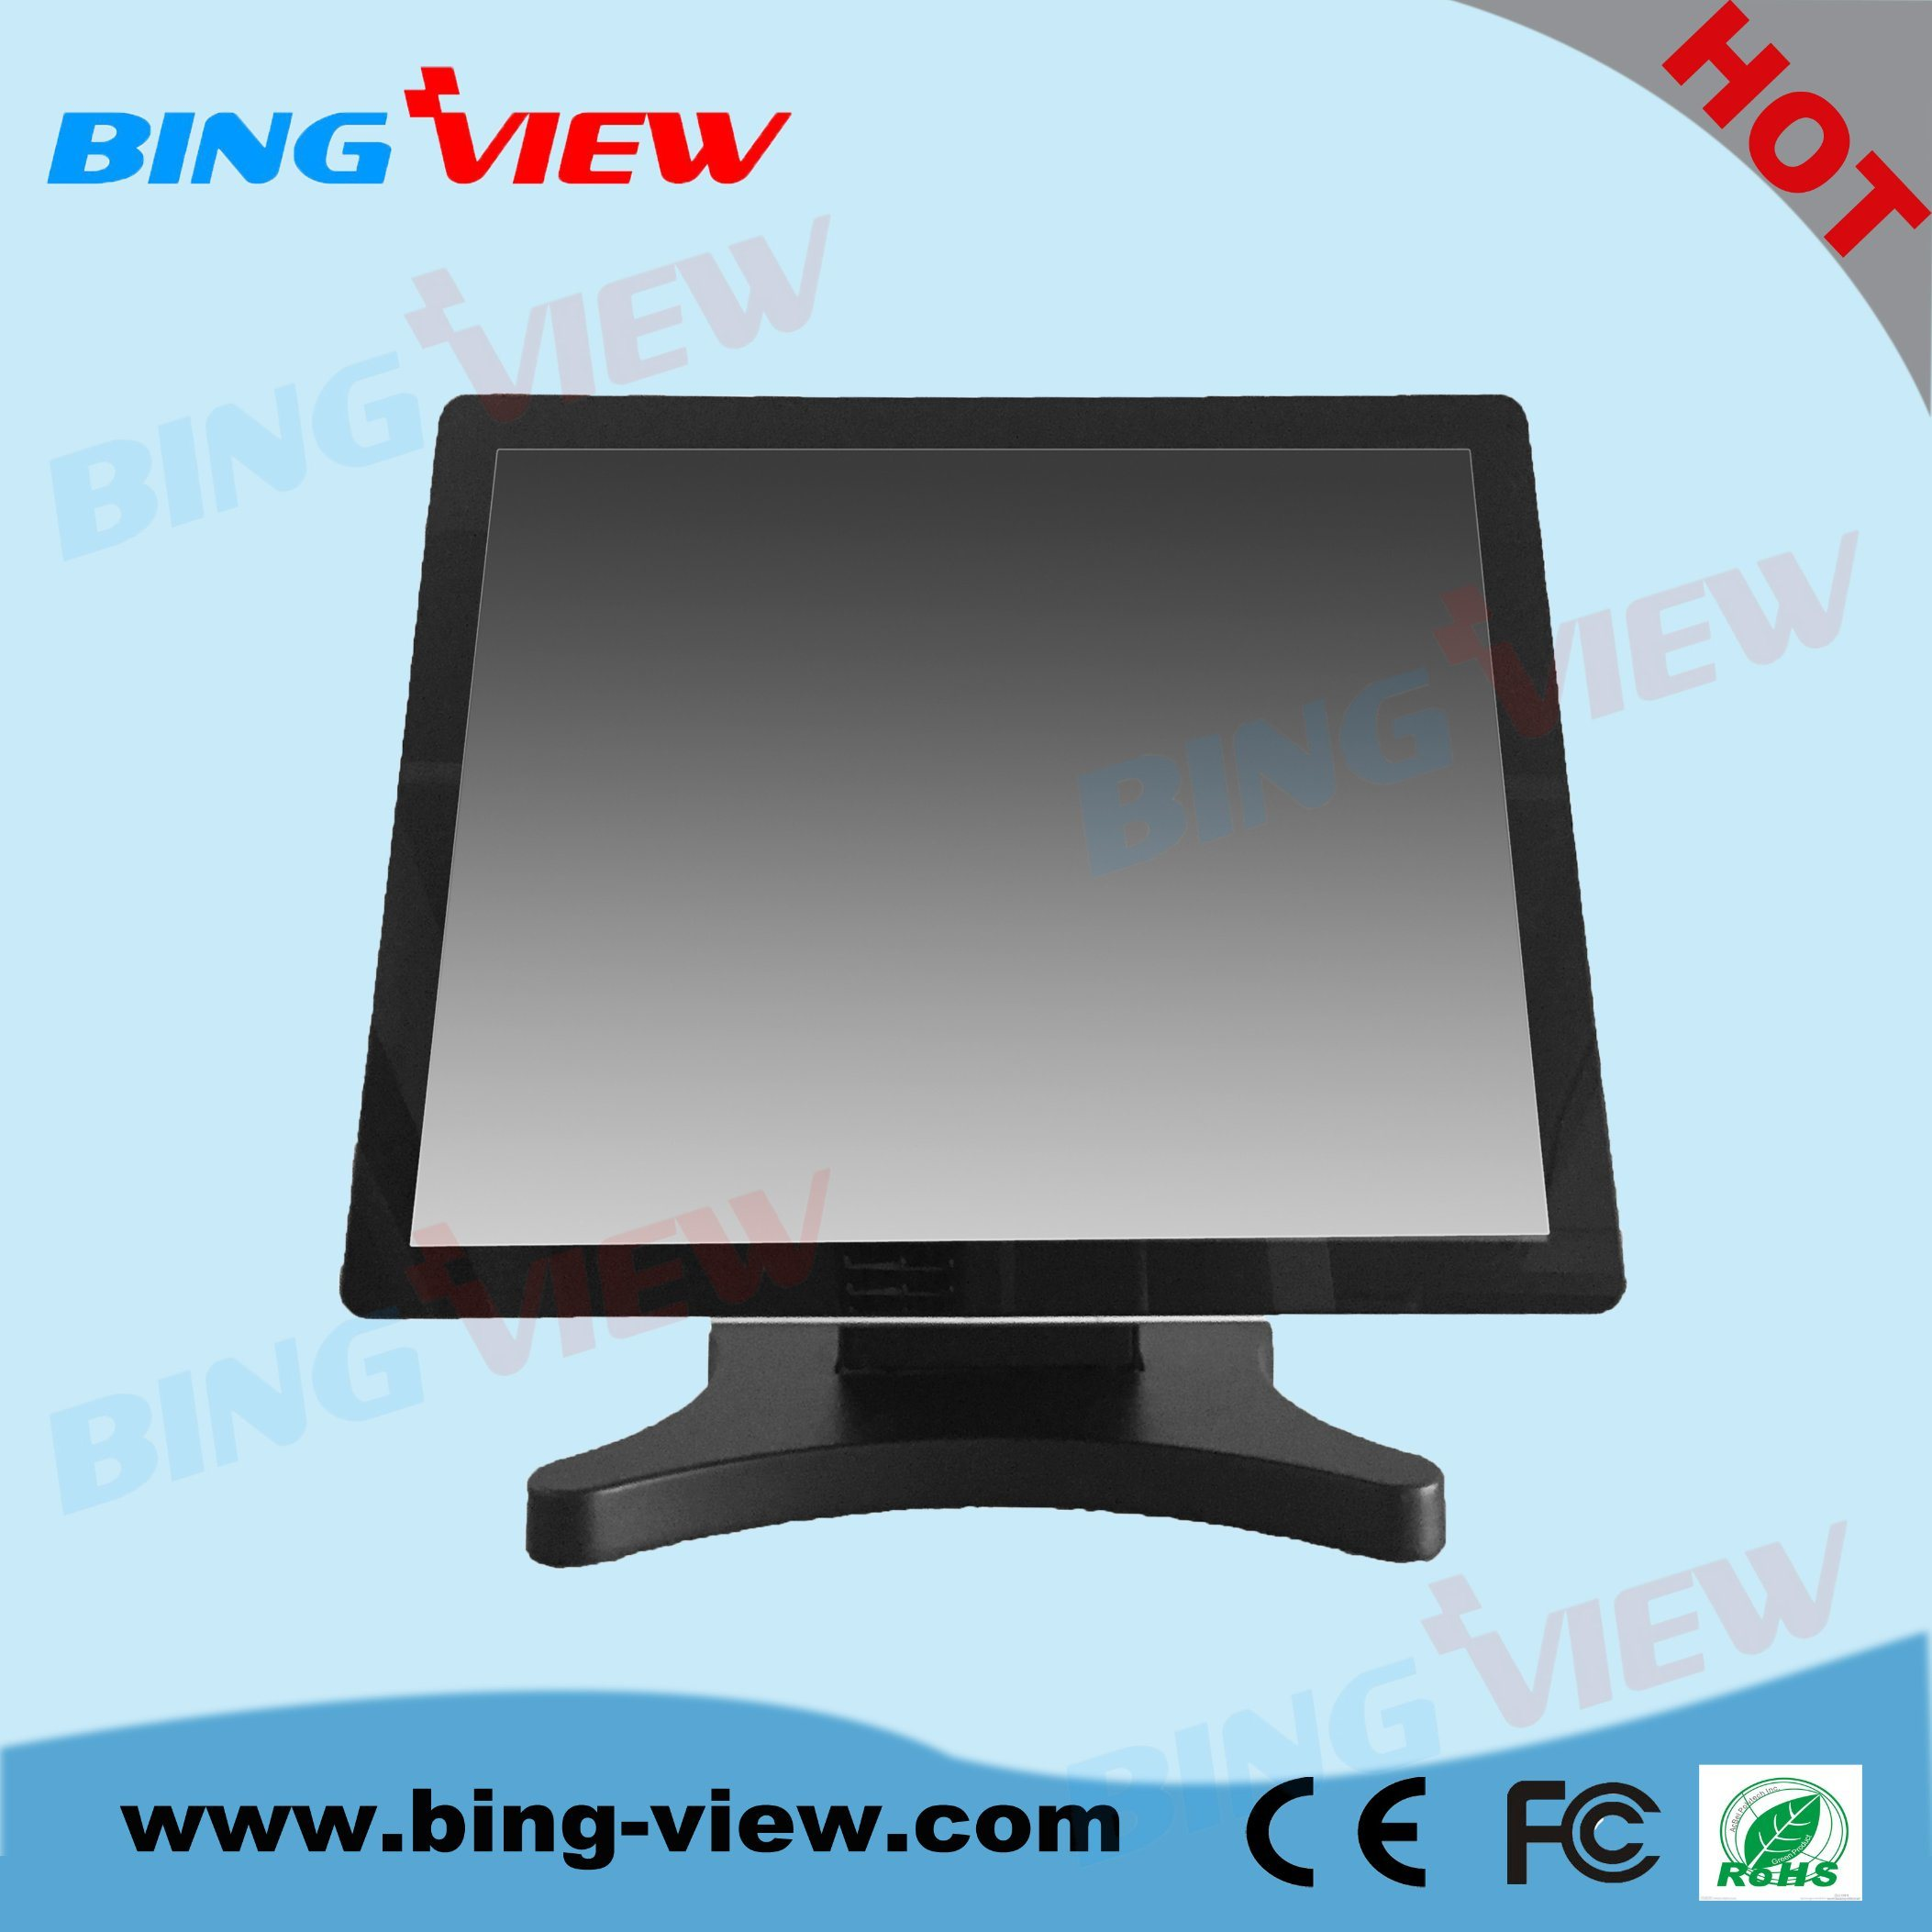 "4: 3 Hot Selling 19"" True Flat Design Pcap POS Touch Monitor Screen"